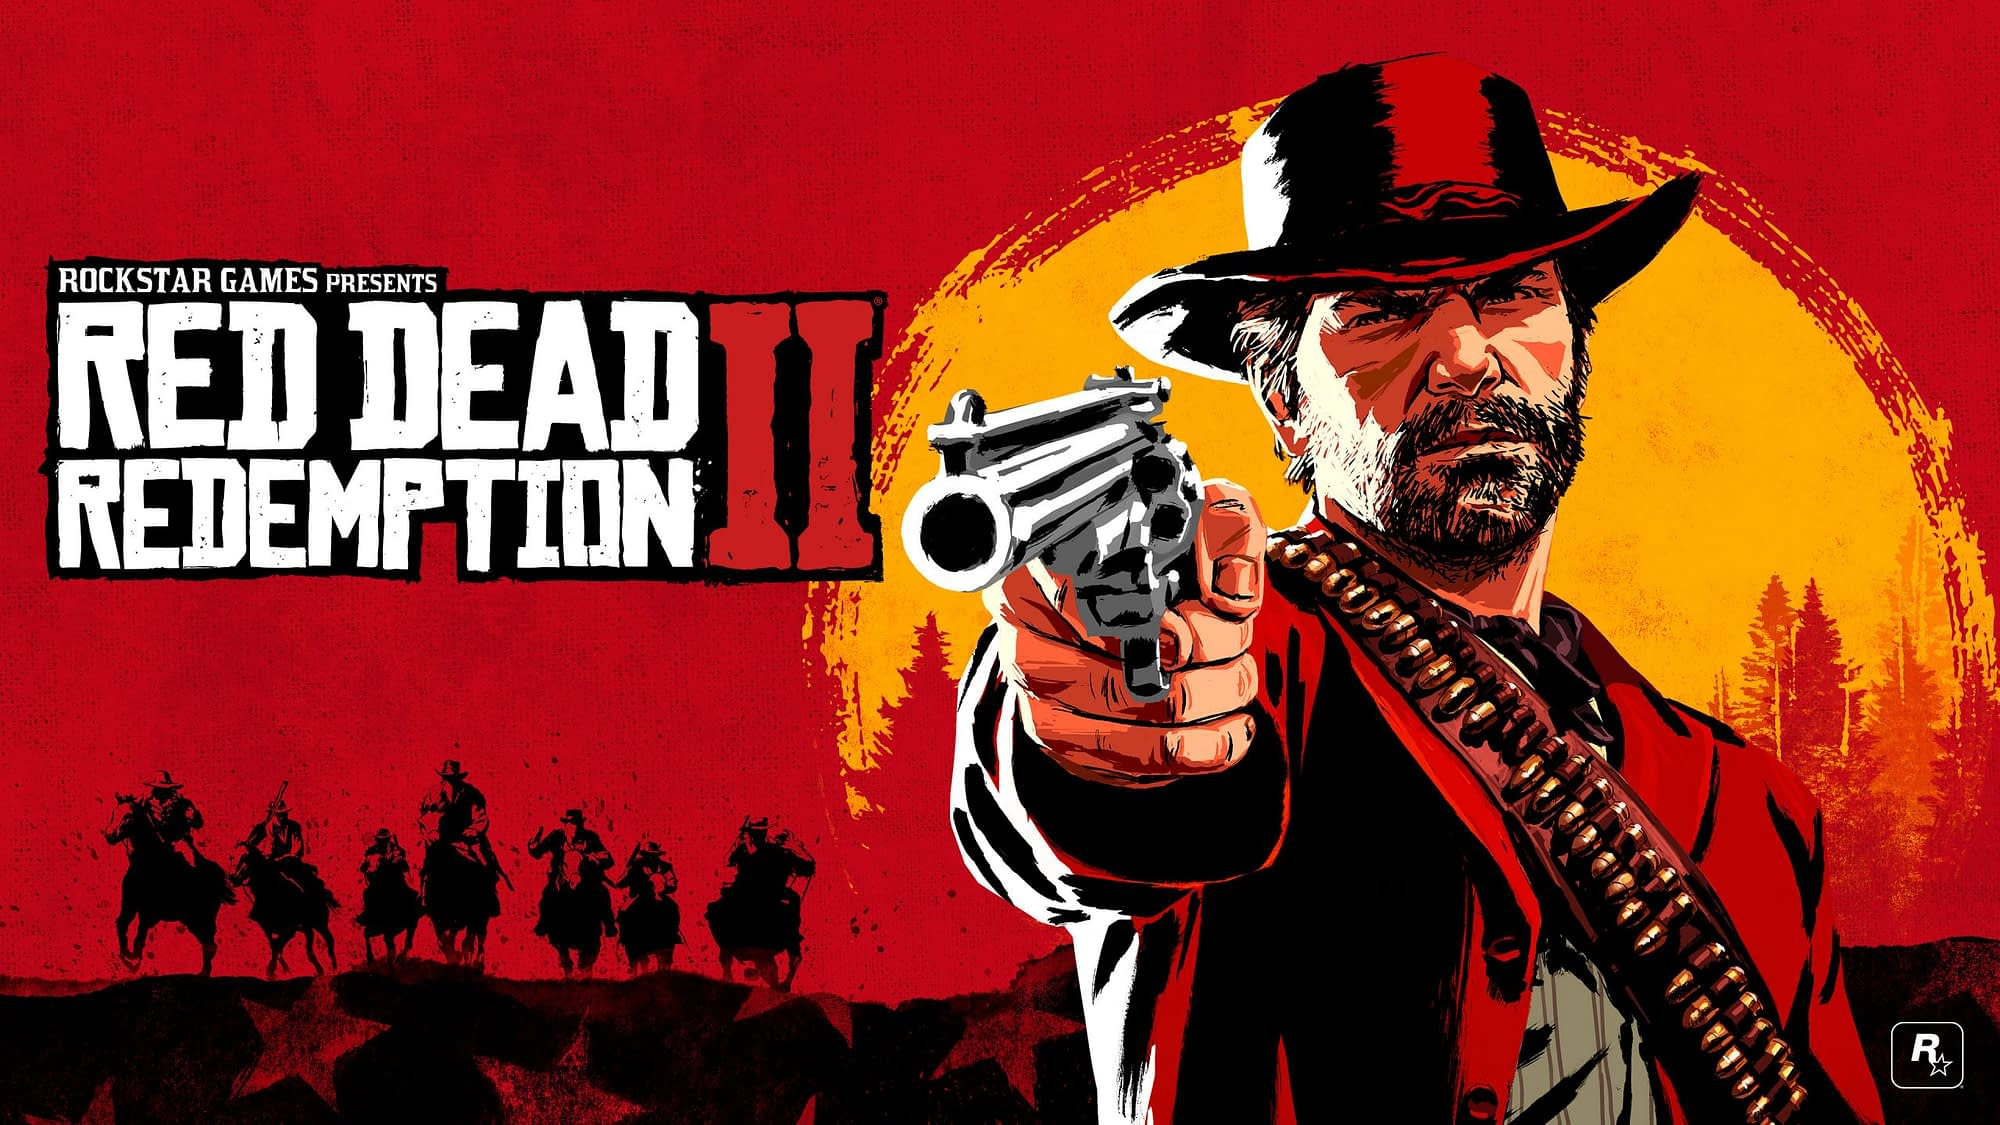 Red Dead Redemption 2 Wins Steam's Game of the Year 2020